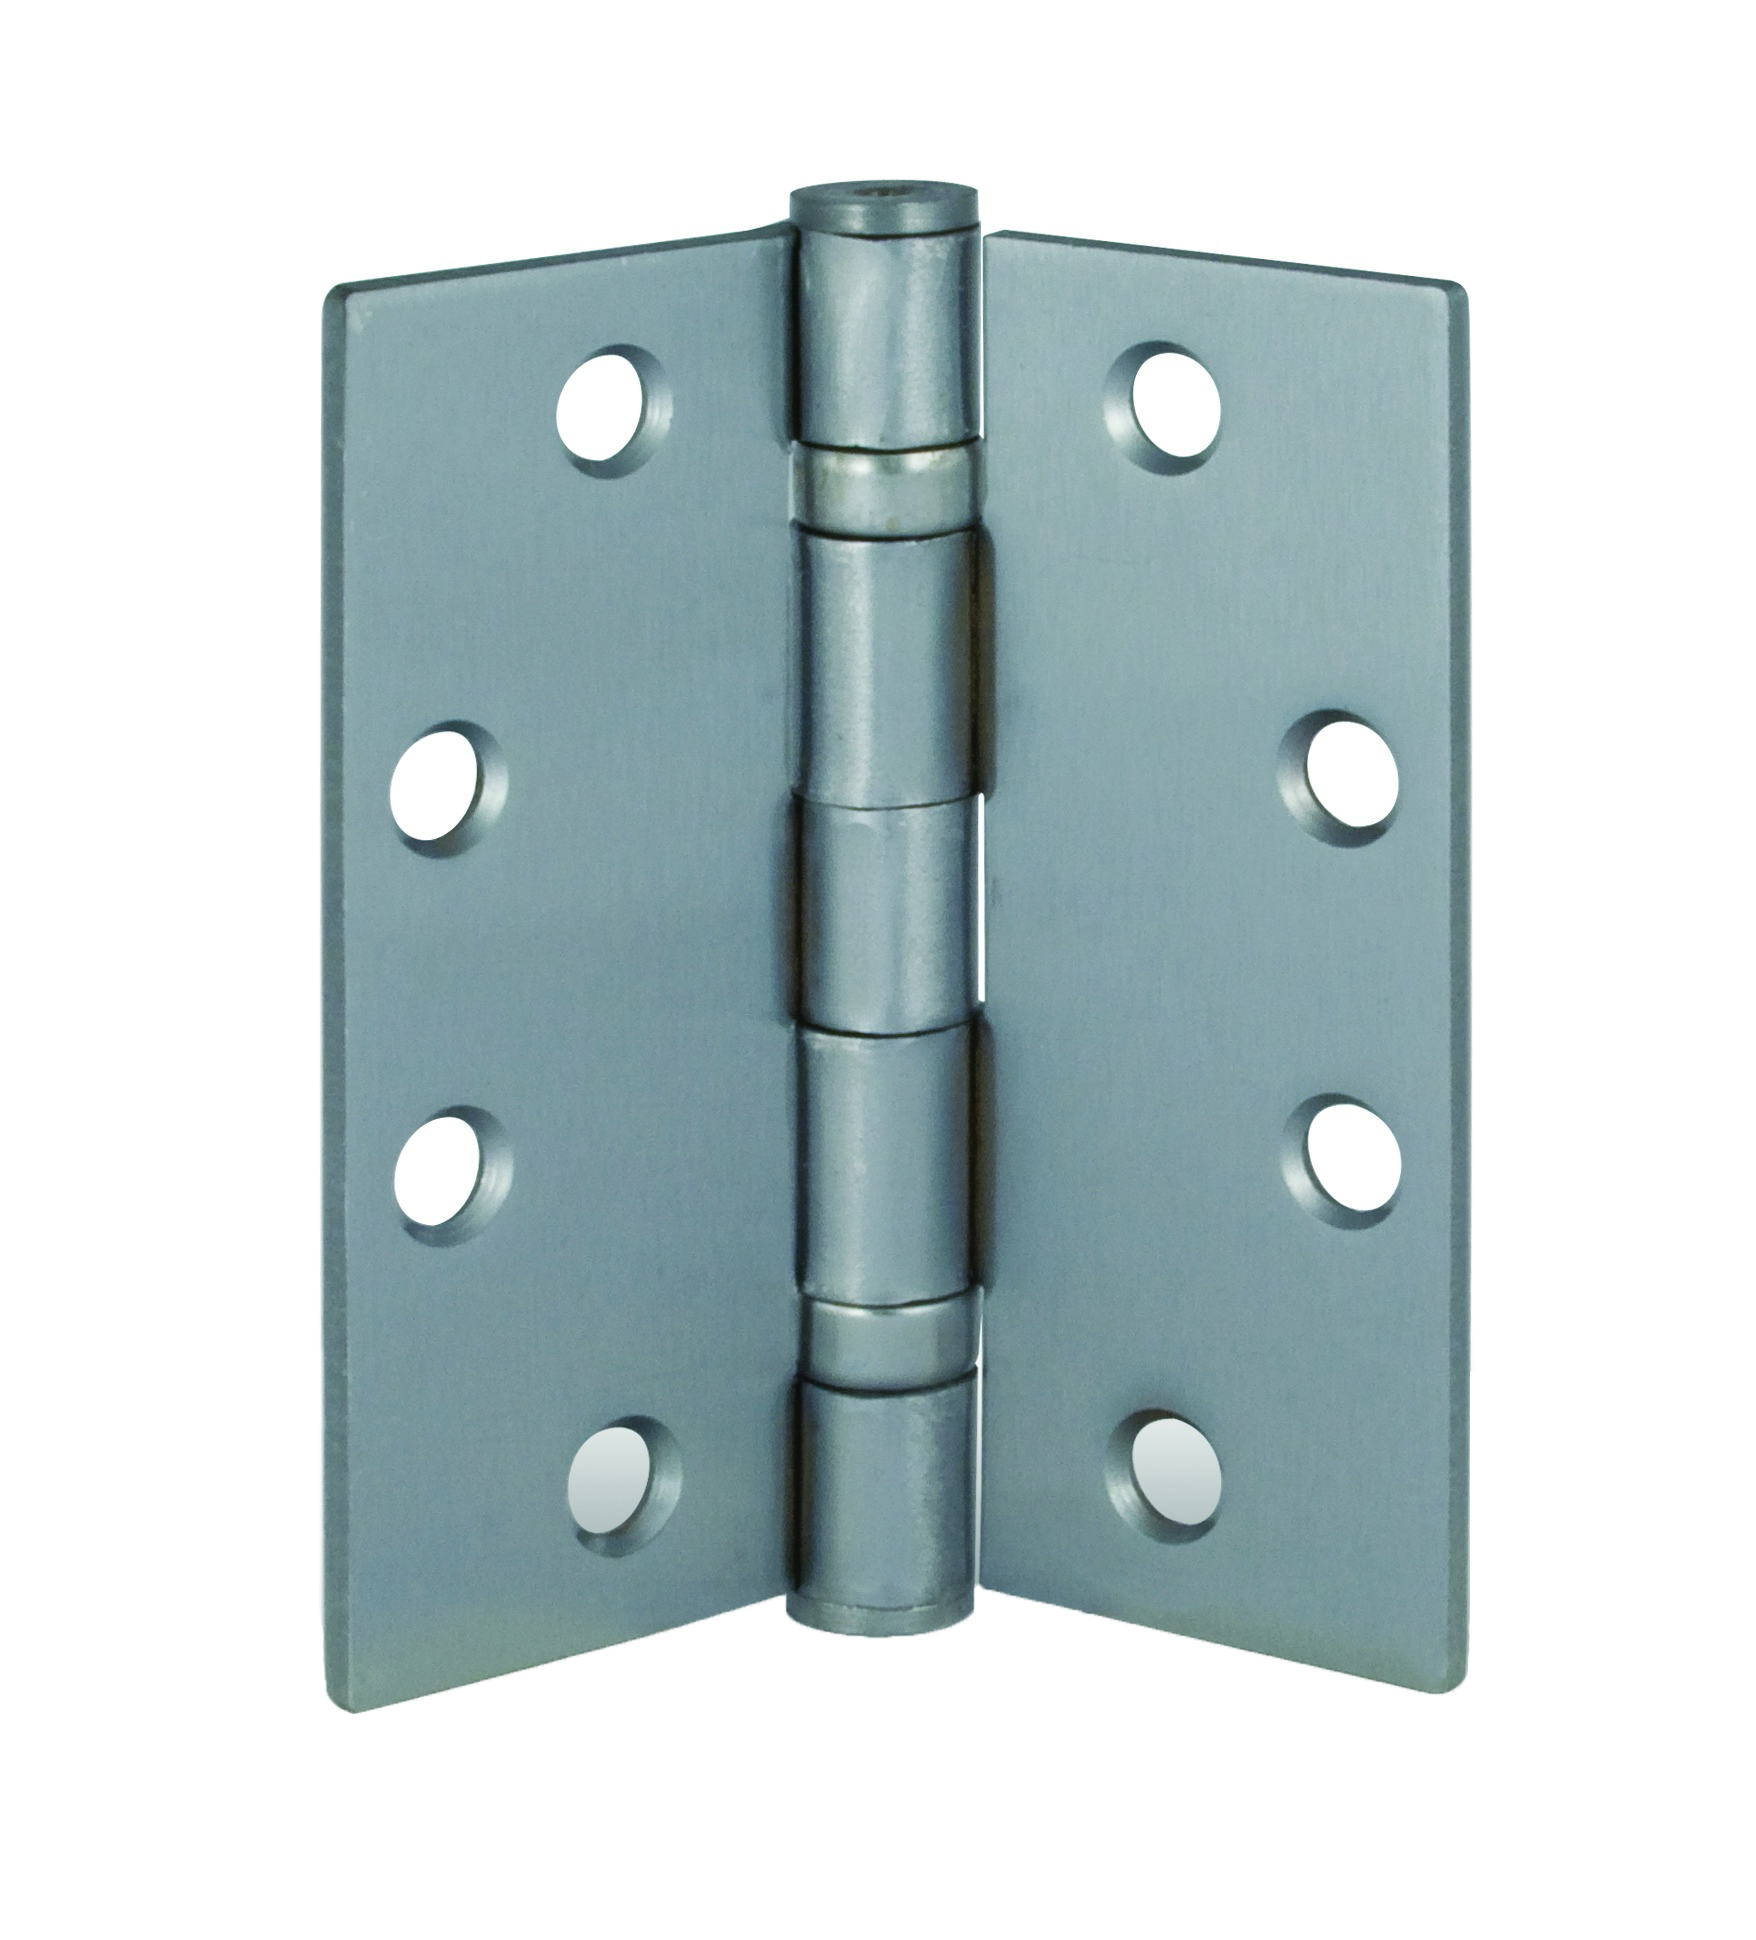 5″ x 5″ x SQ Ball Bearing Hinge